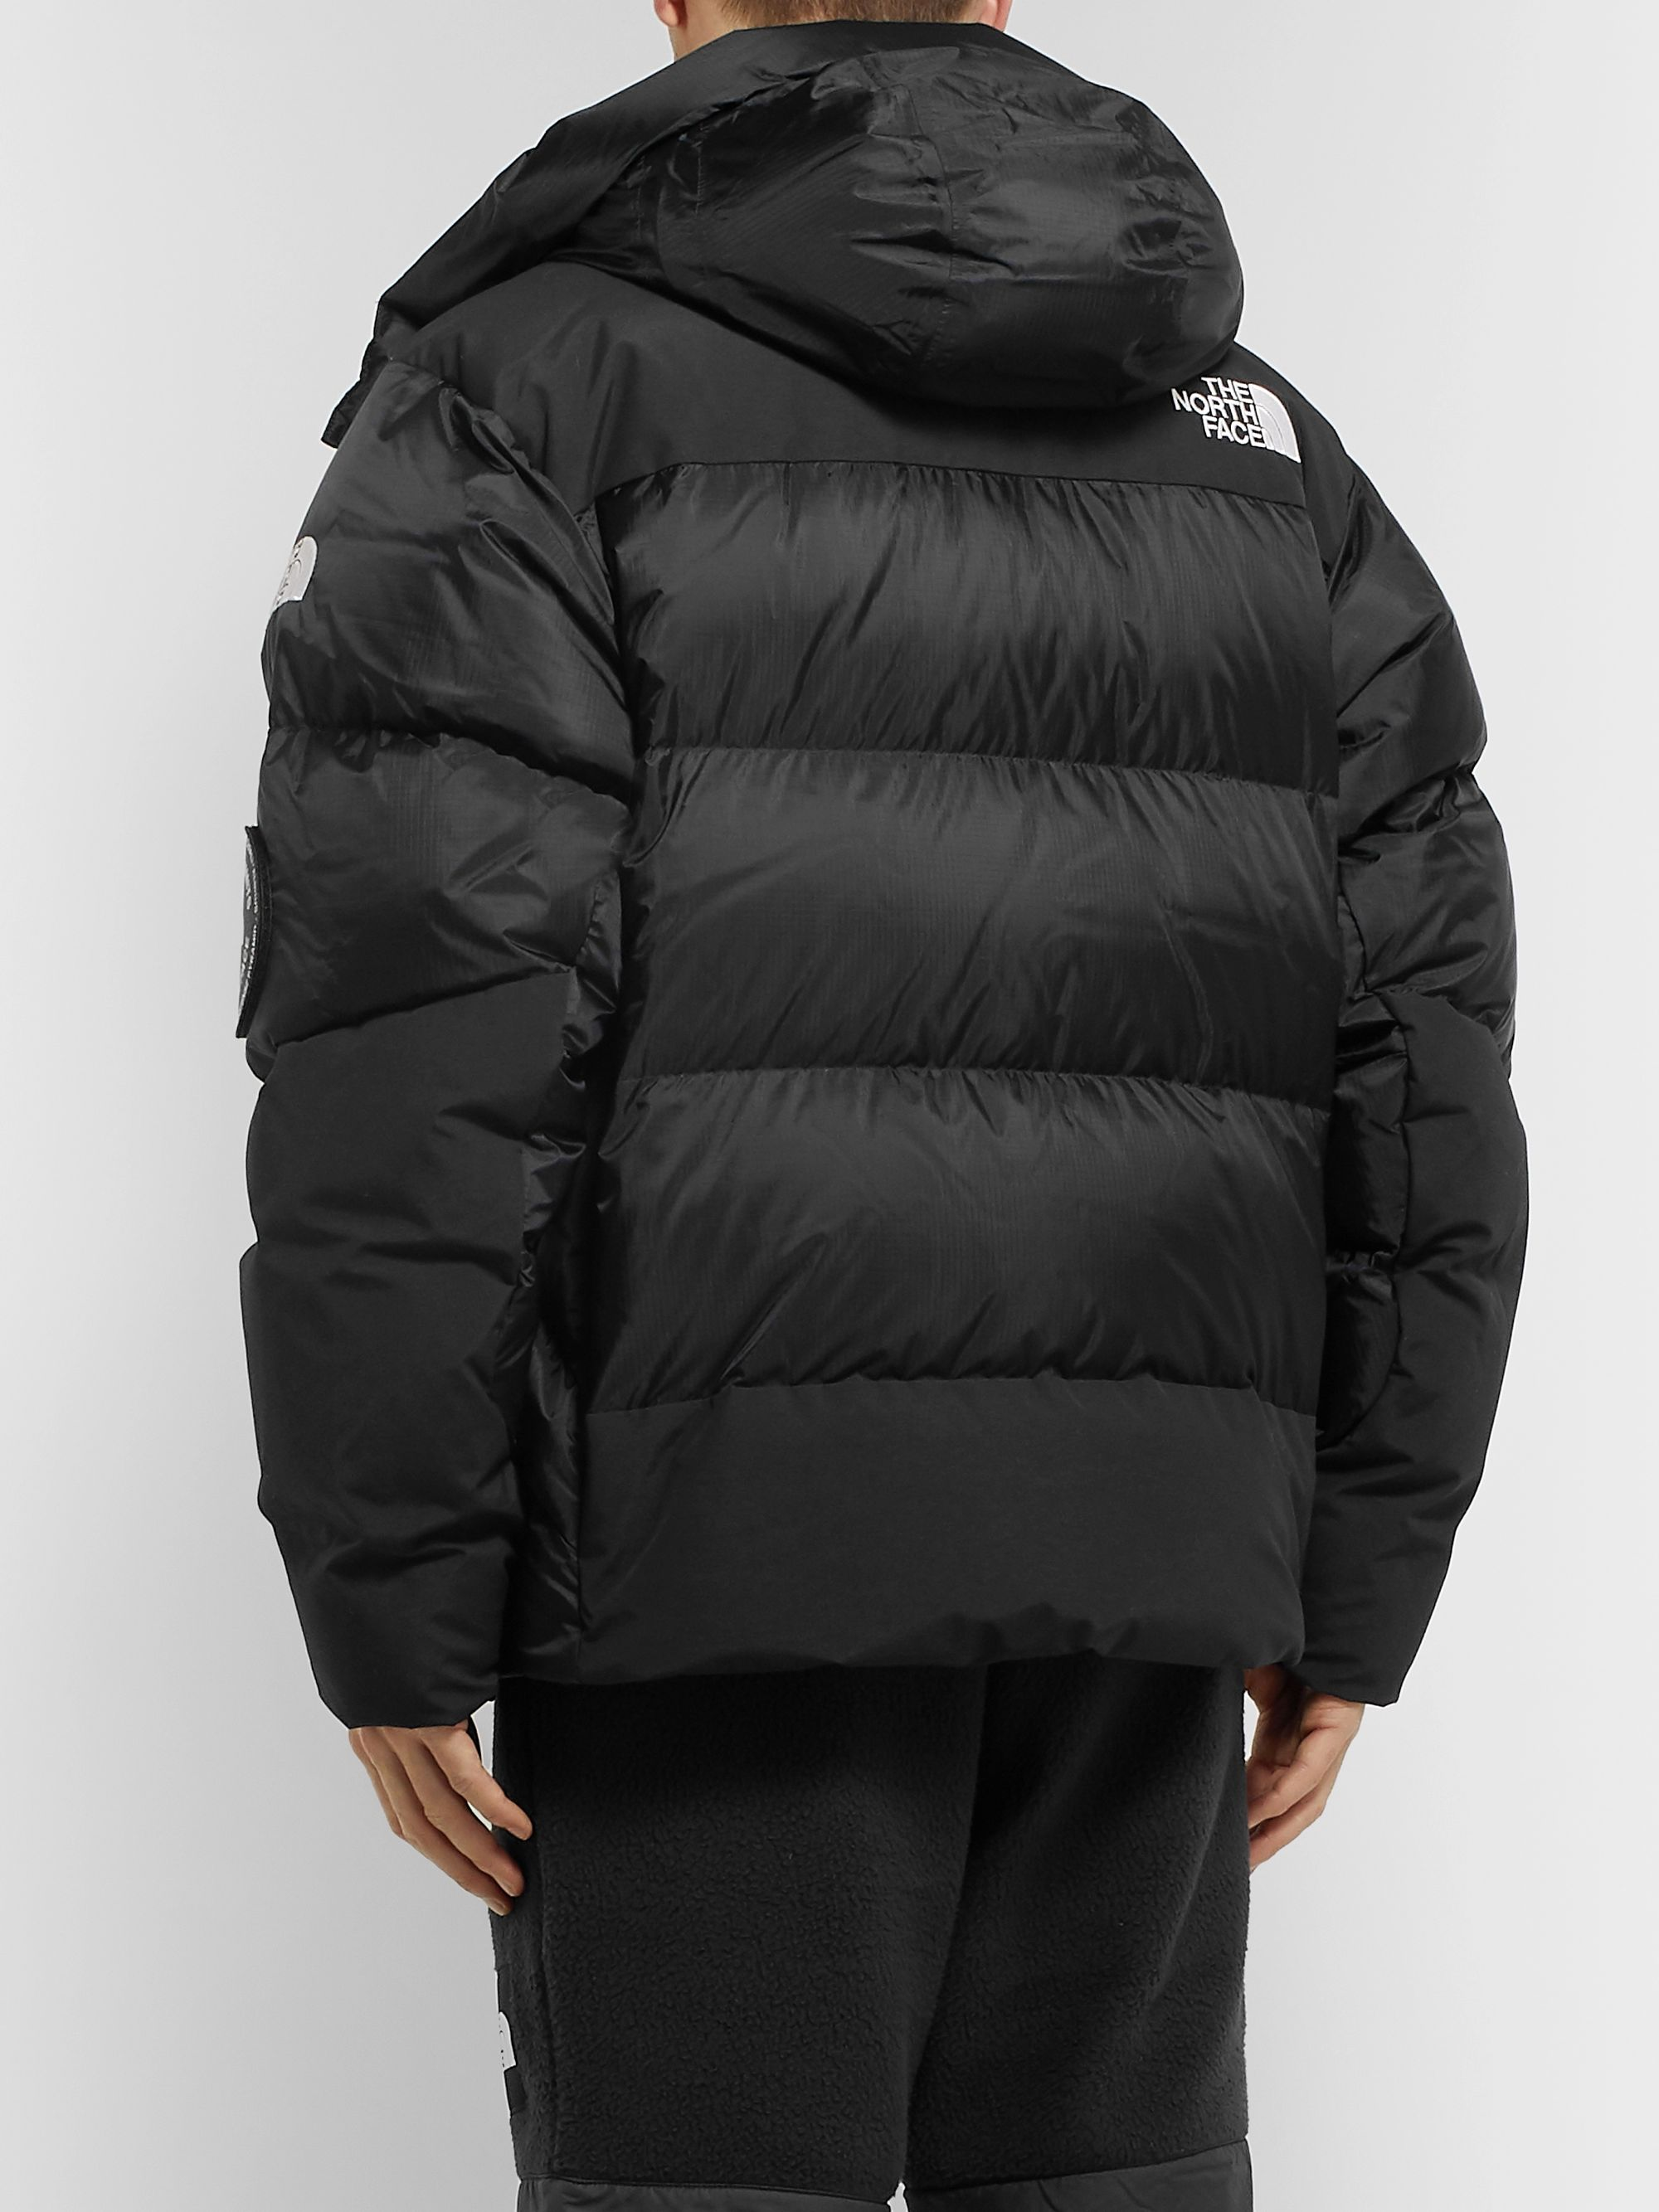 The North Face Summit Series Himalayan Parka GORE-TEX and Quilted Ripstop Down Coat